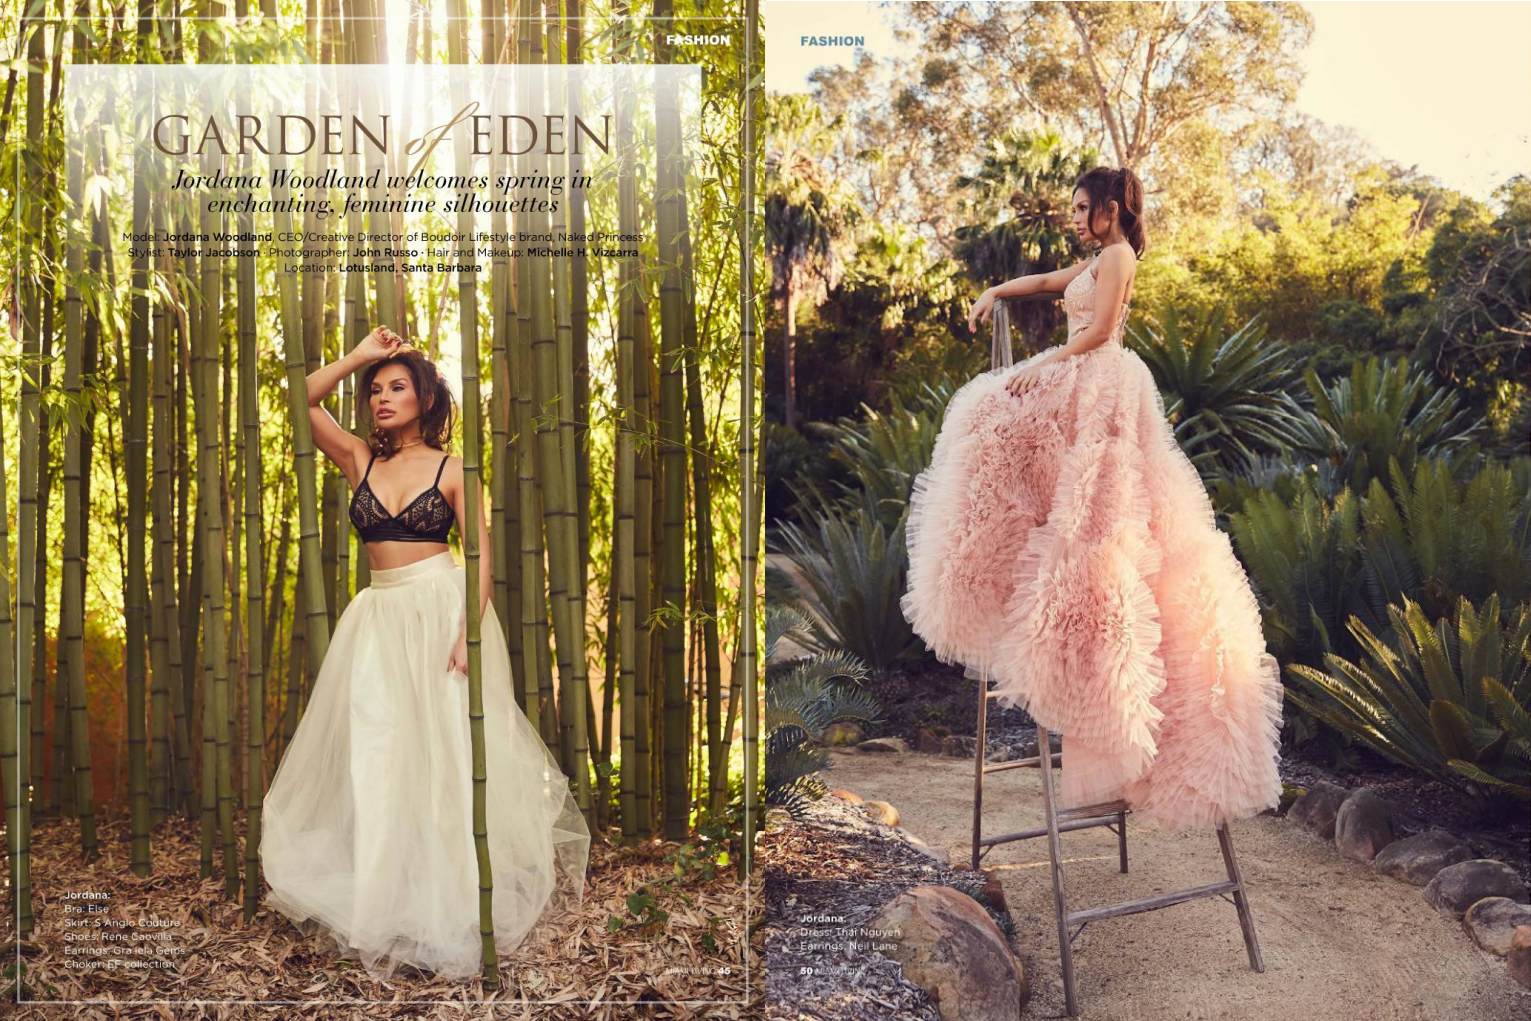 Jordana Woodland_Miami Living Magazine Editorial_Lotusland_BMP Beverly Hills.png